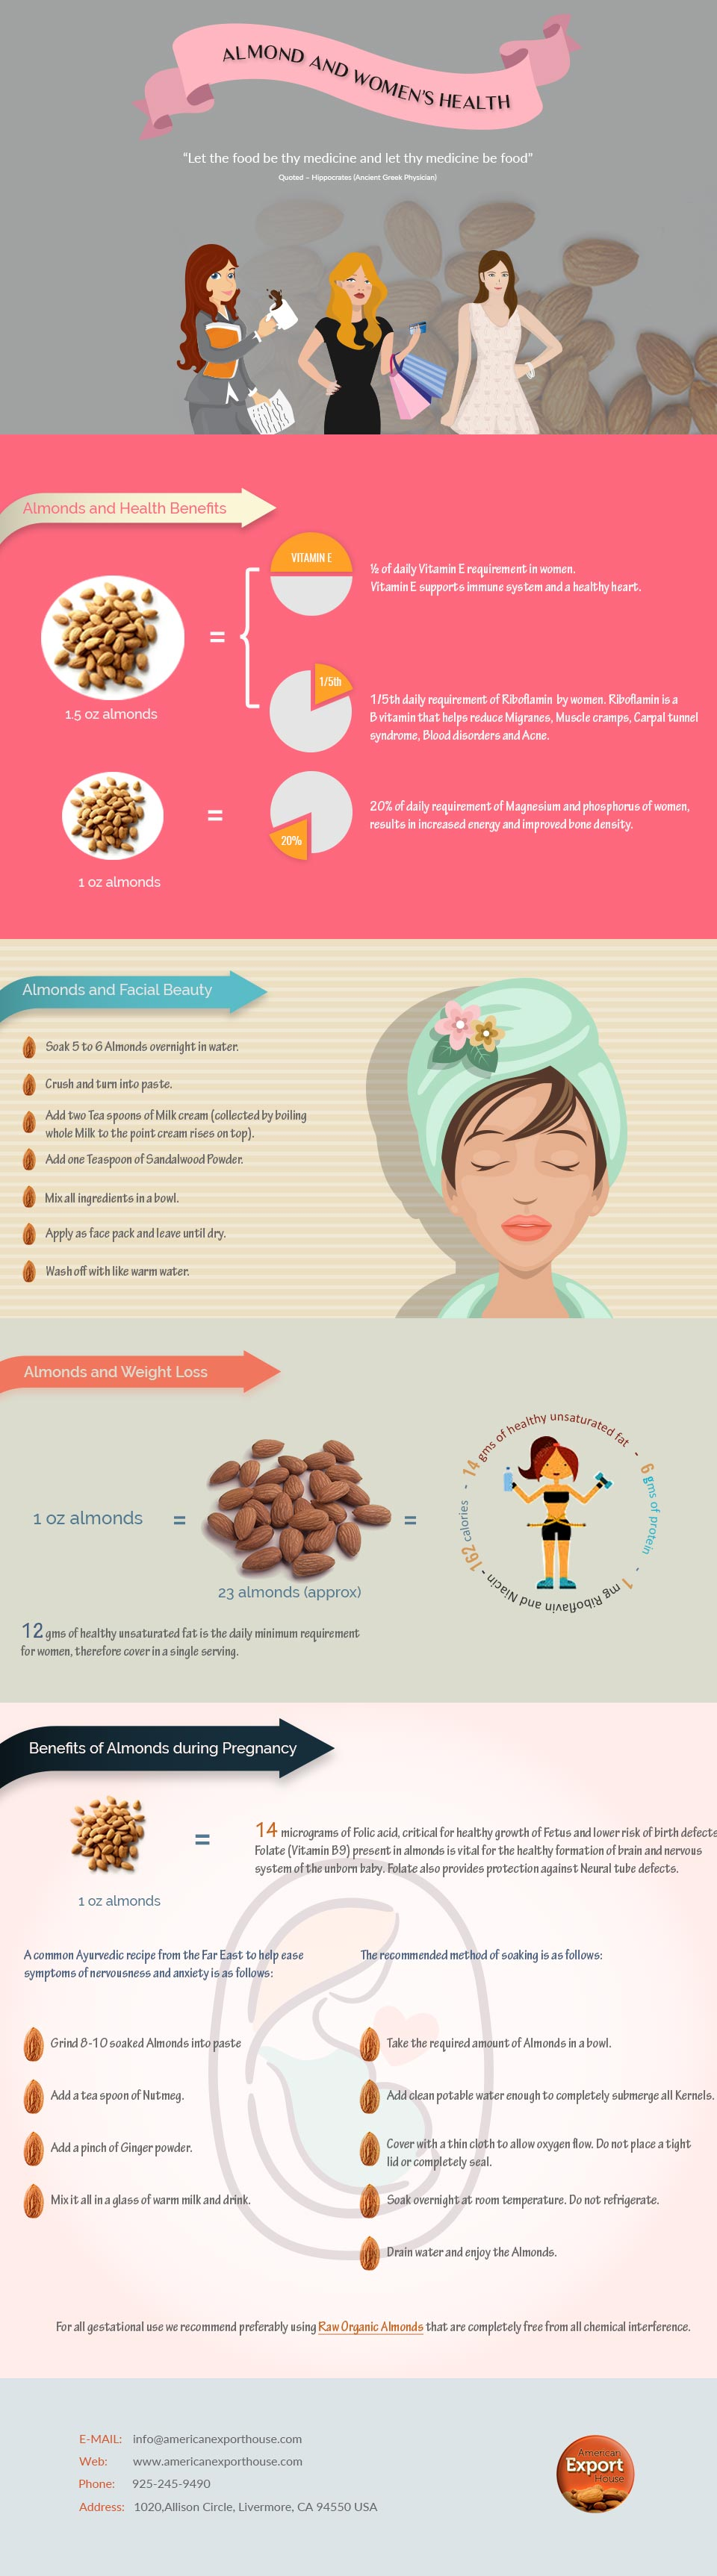 Why Almonds Are Boon for Women's Health – Infographic